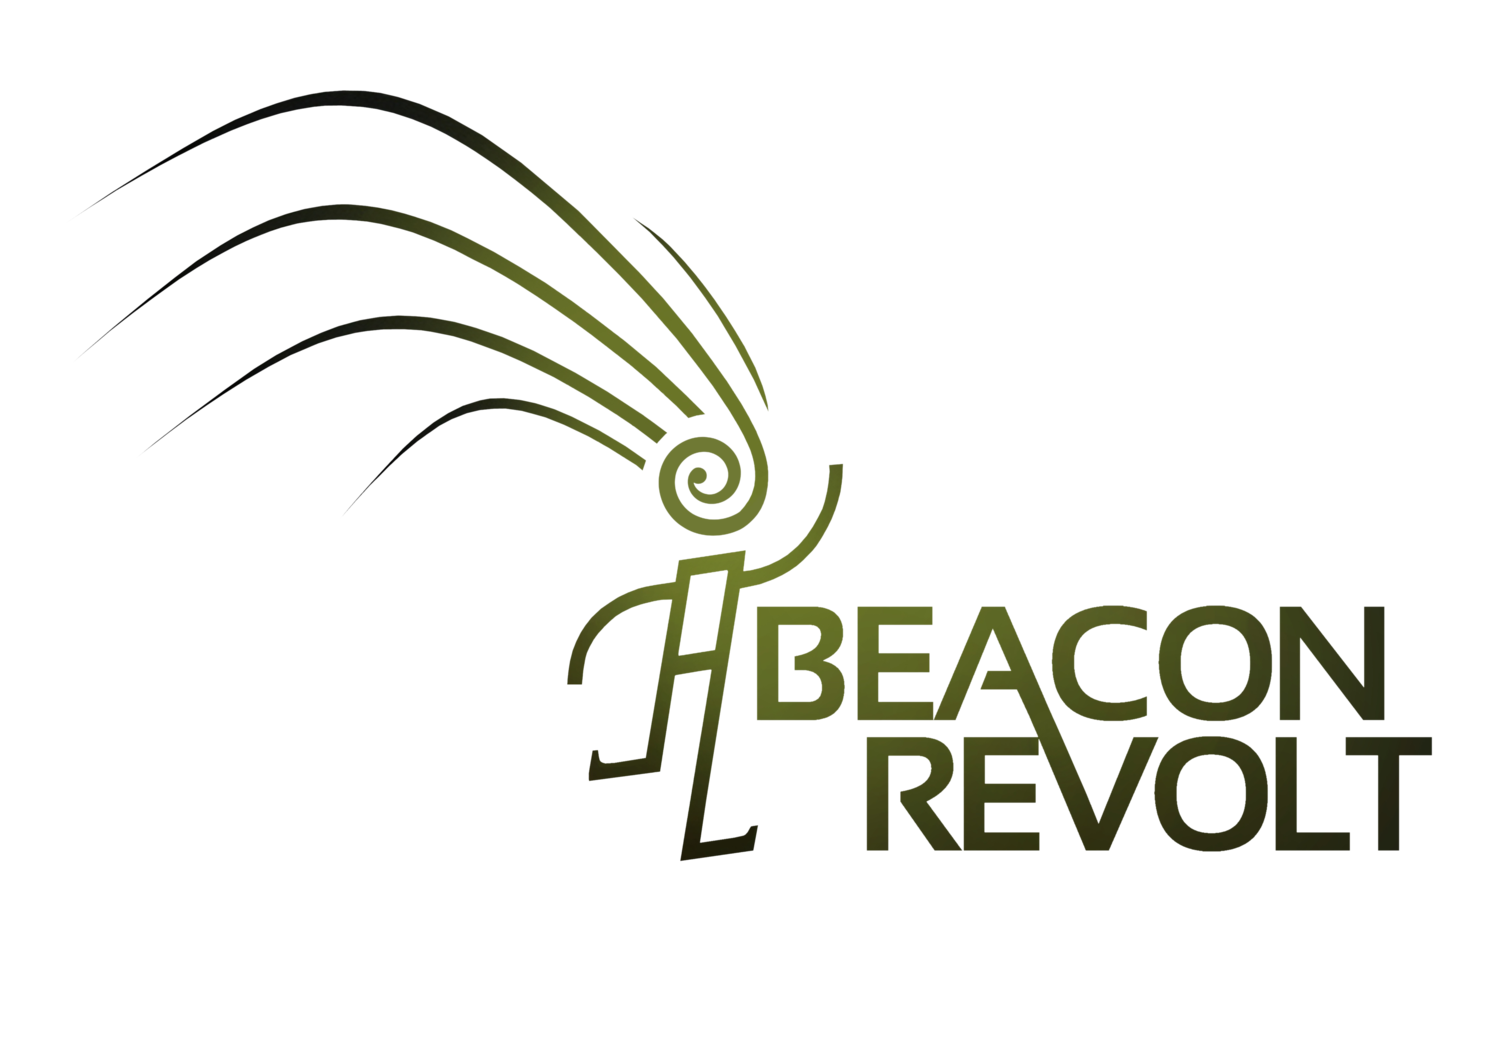 Beacon Revolt